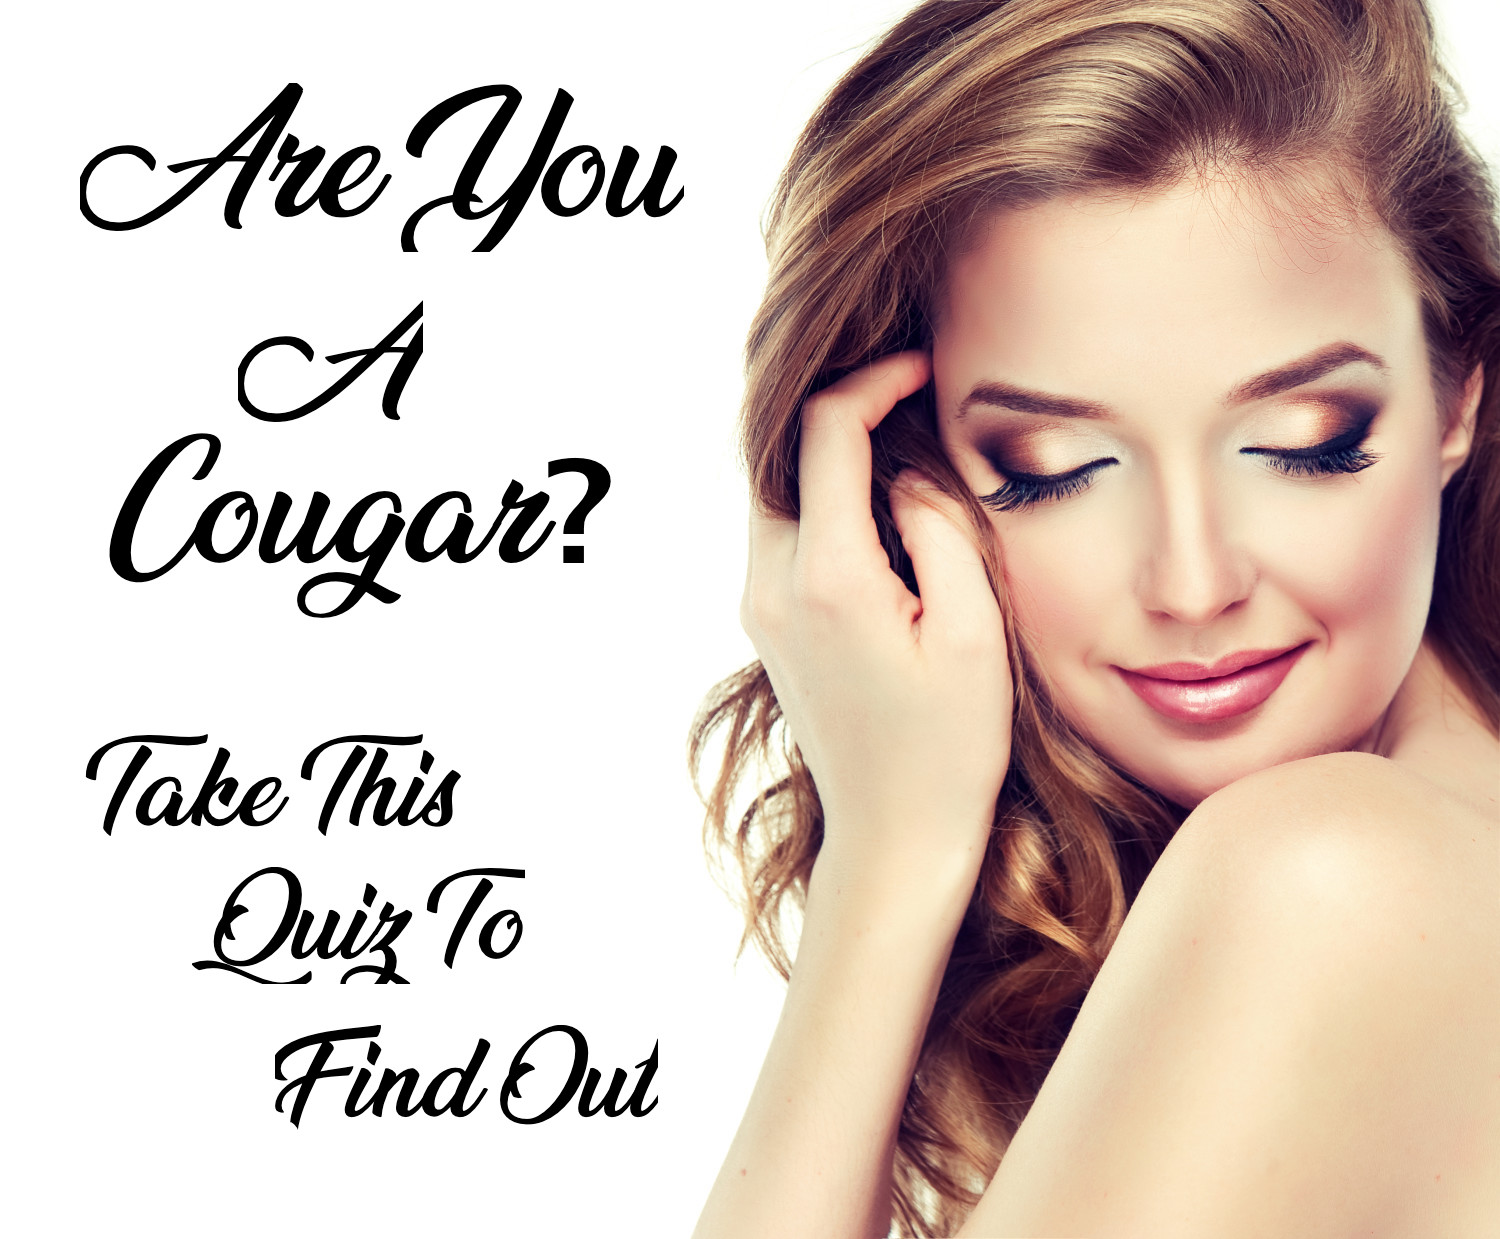 Find cougars near you